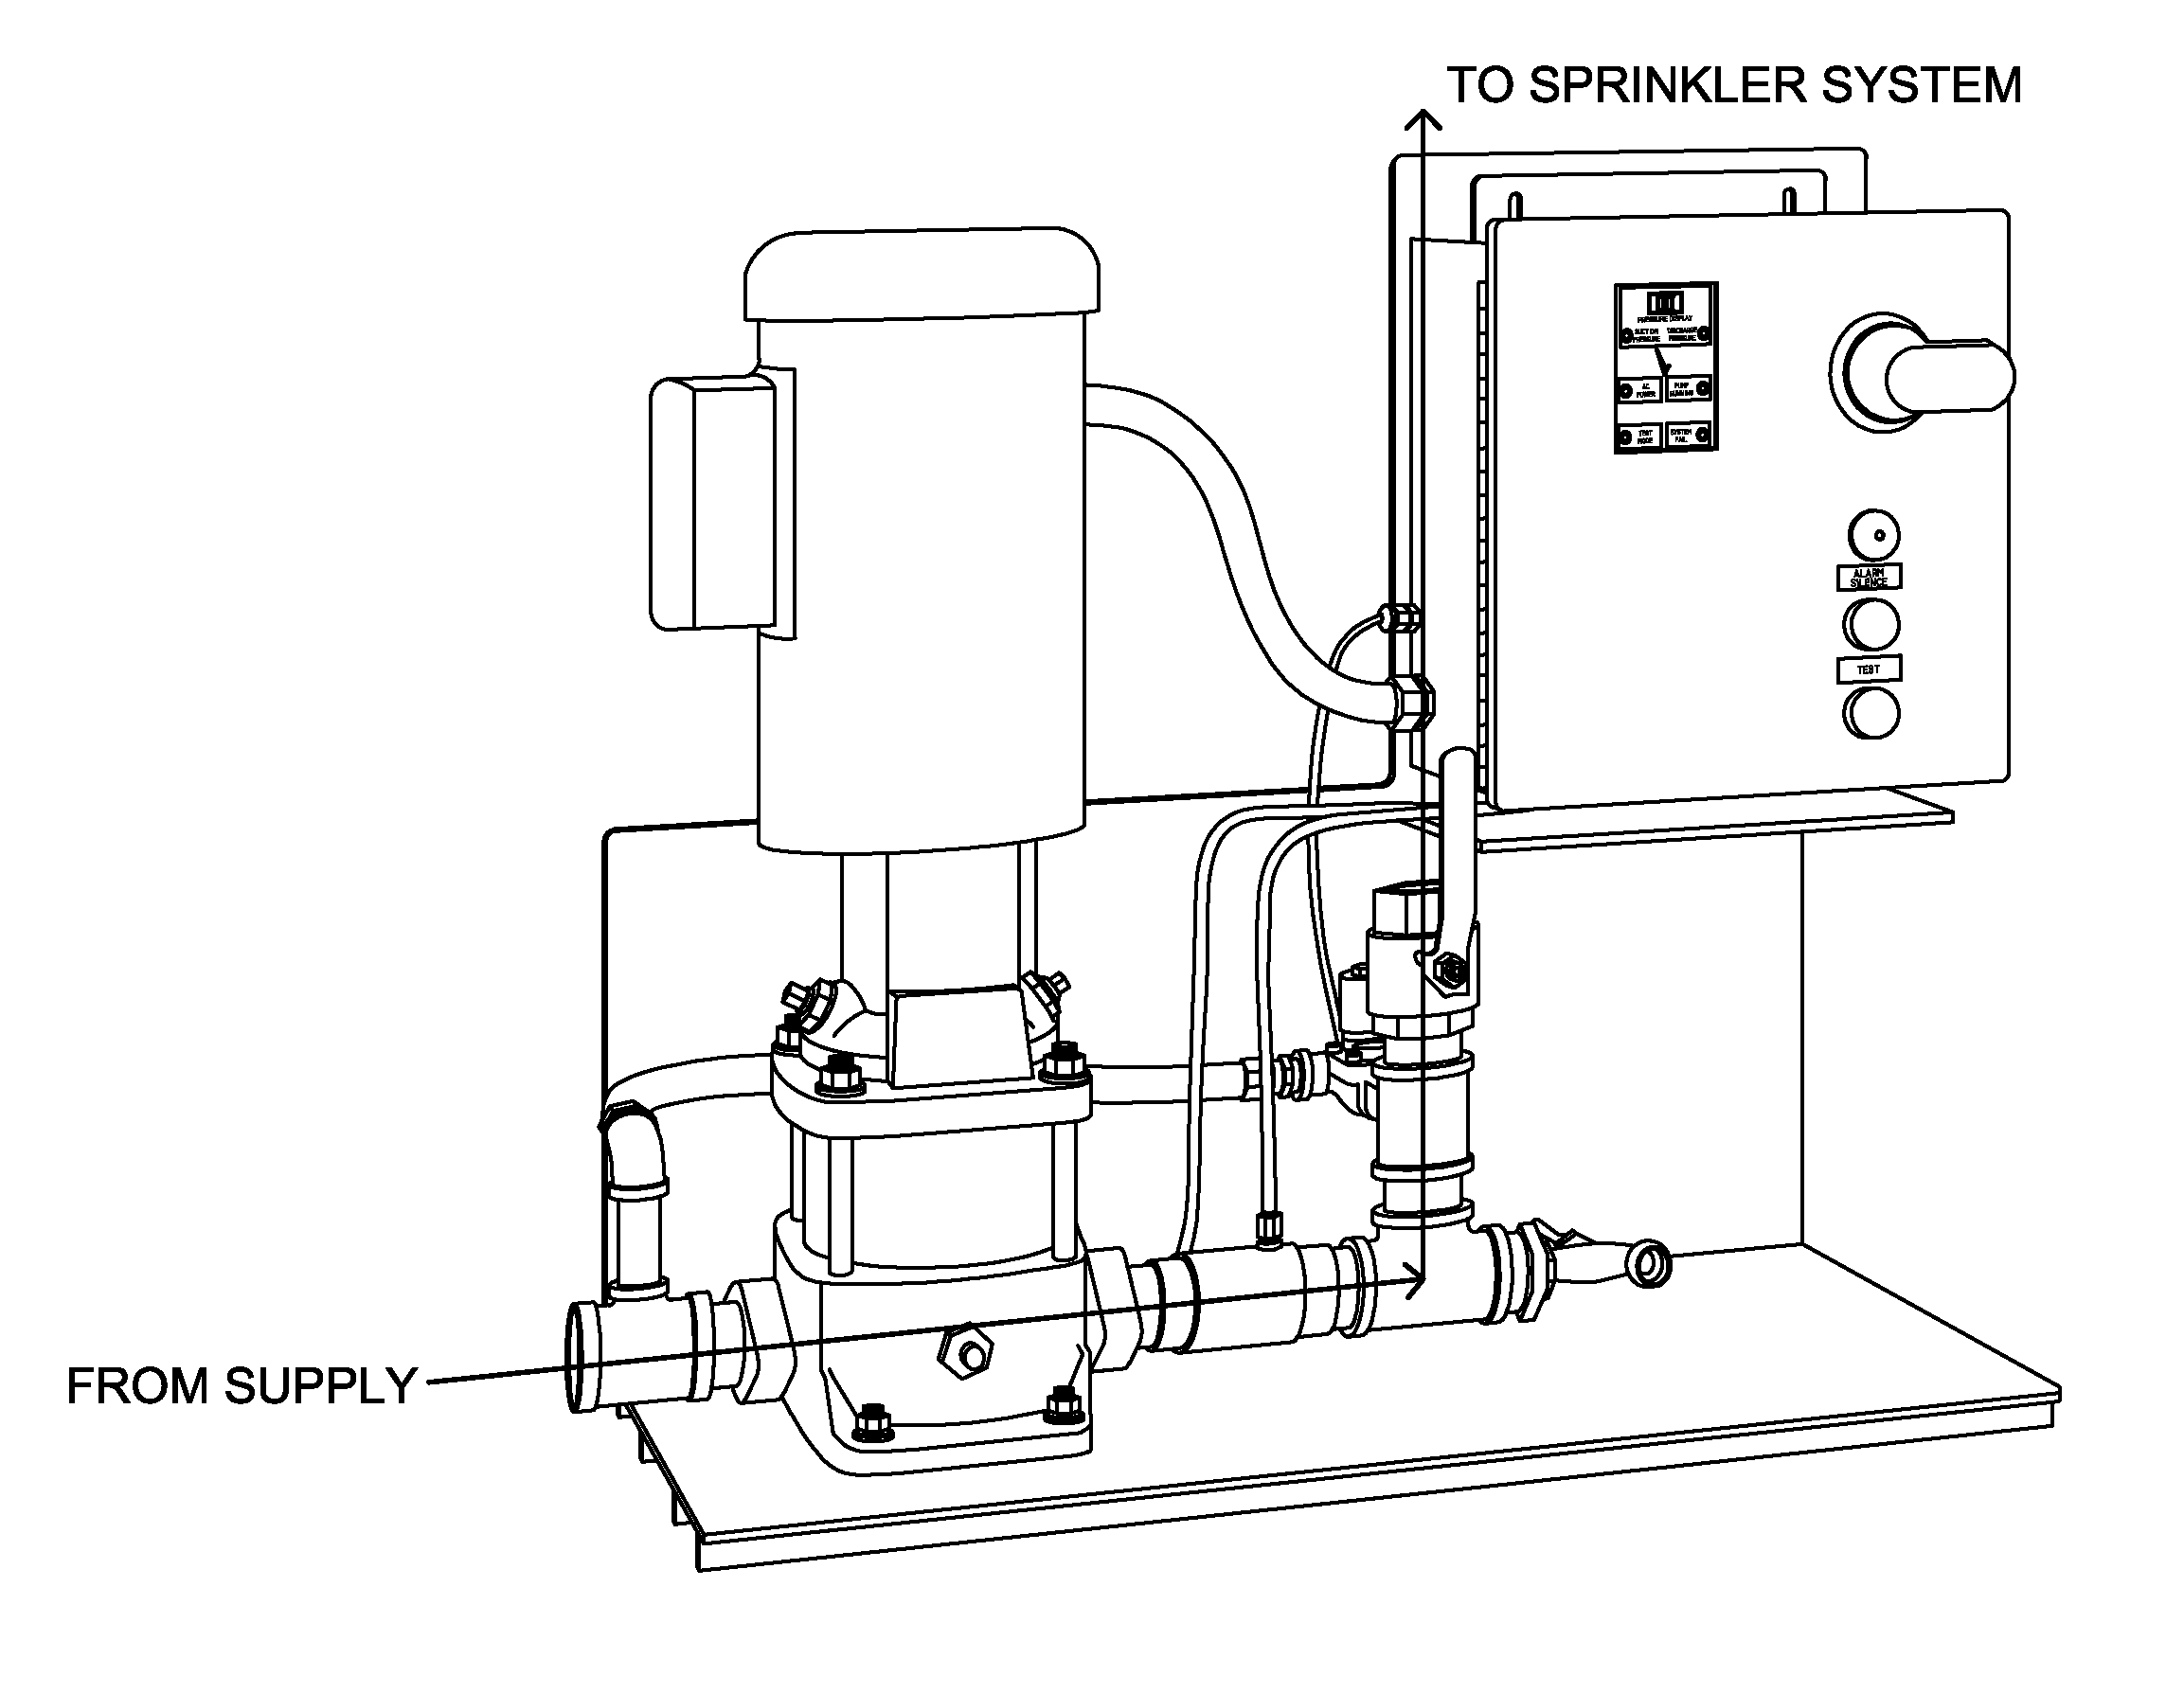 2 Boiler Piping Diagram